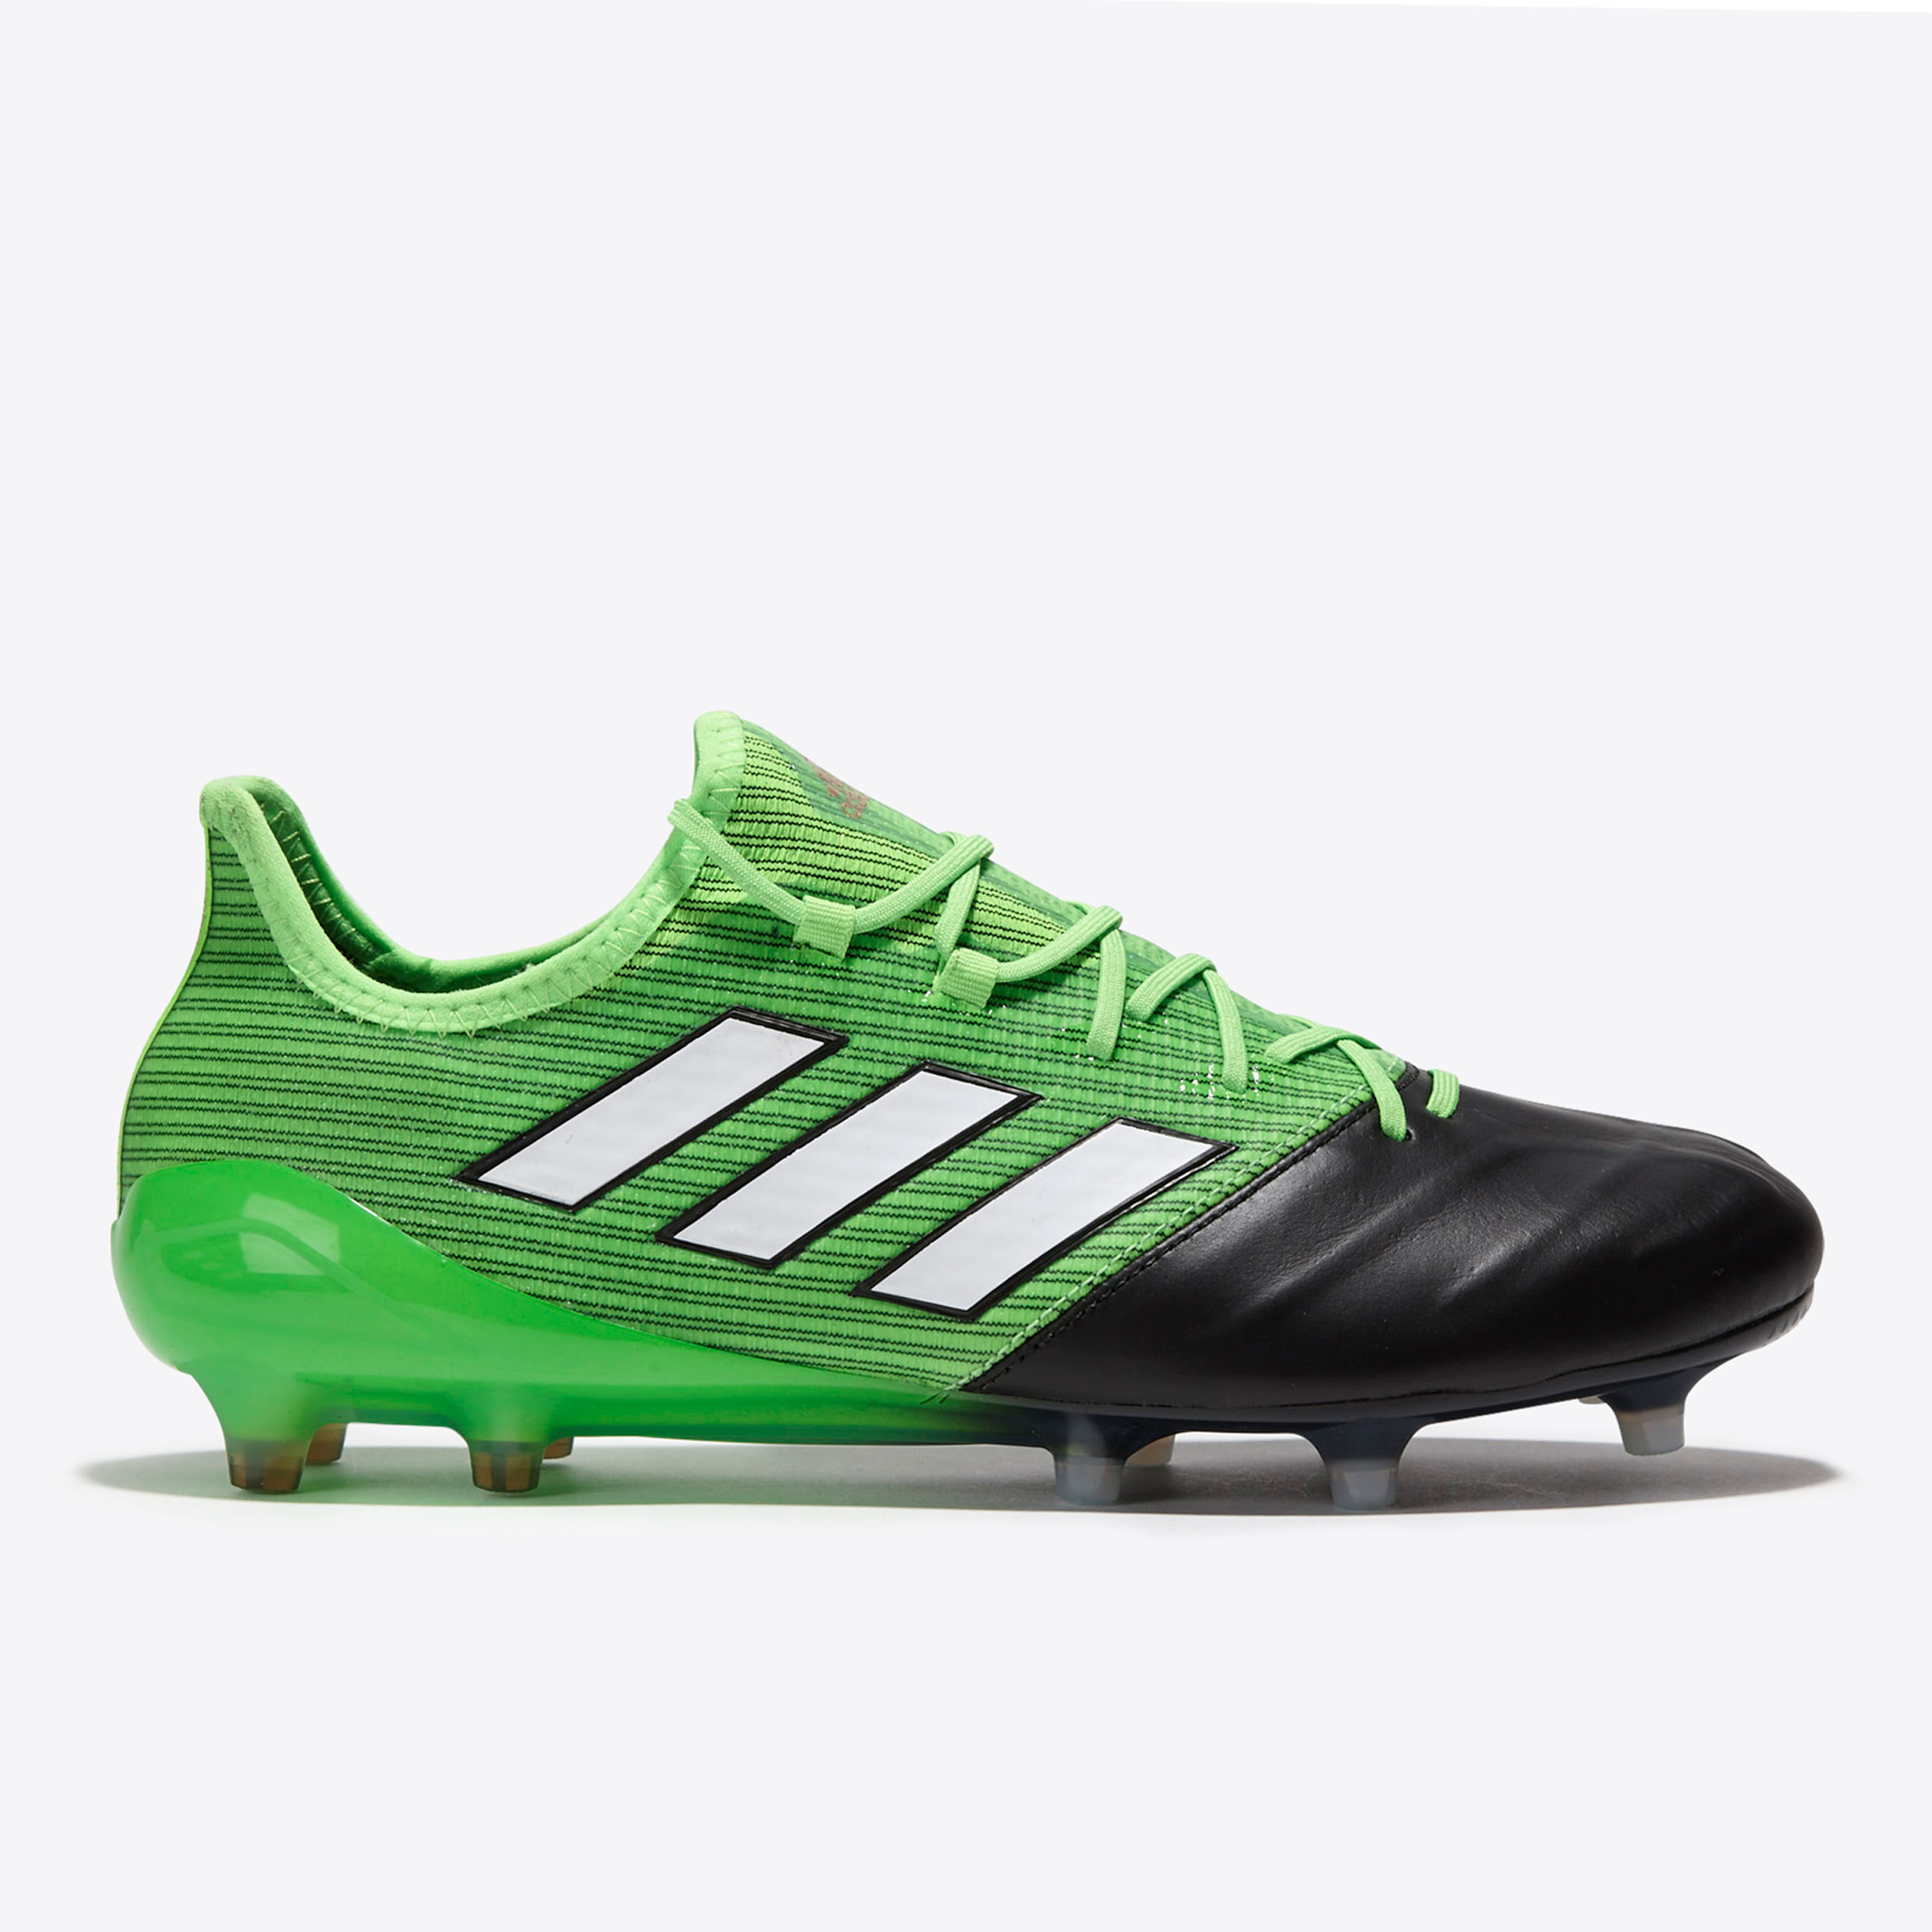 hot sale online dbe12 dd05a adidas Ace 17.1 Leather Turbocharge Pack FG Football Boots Green